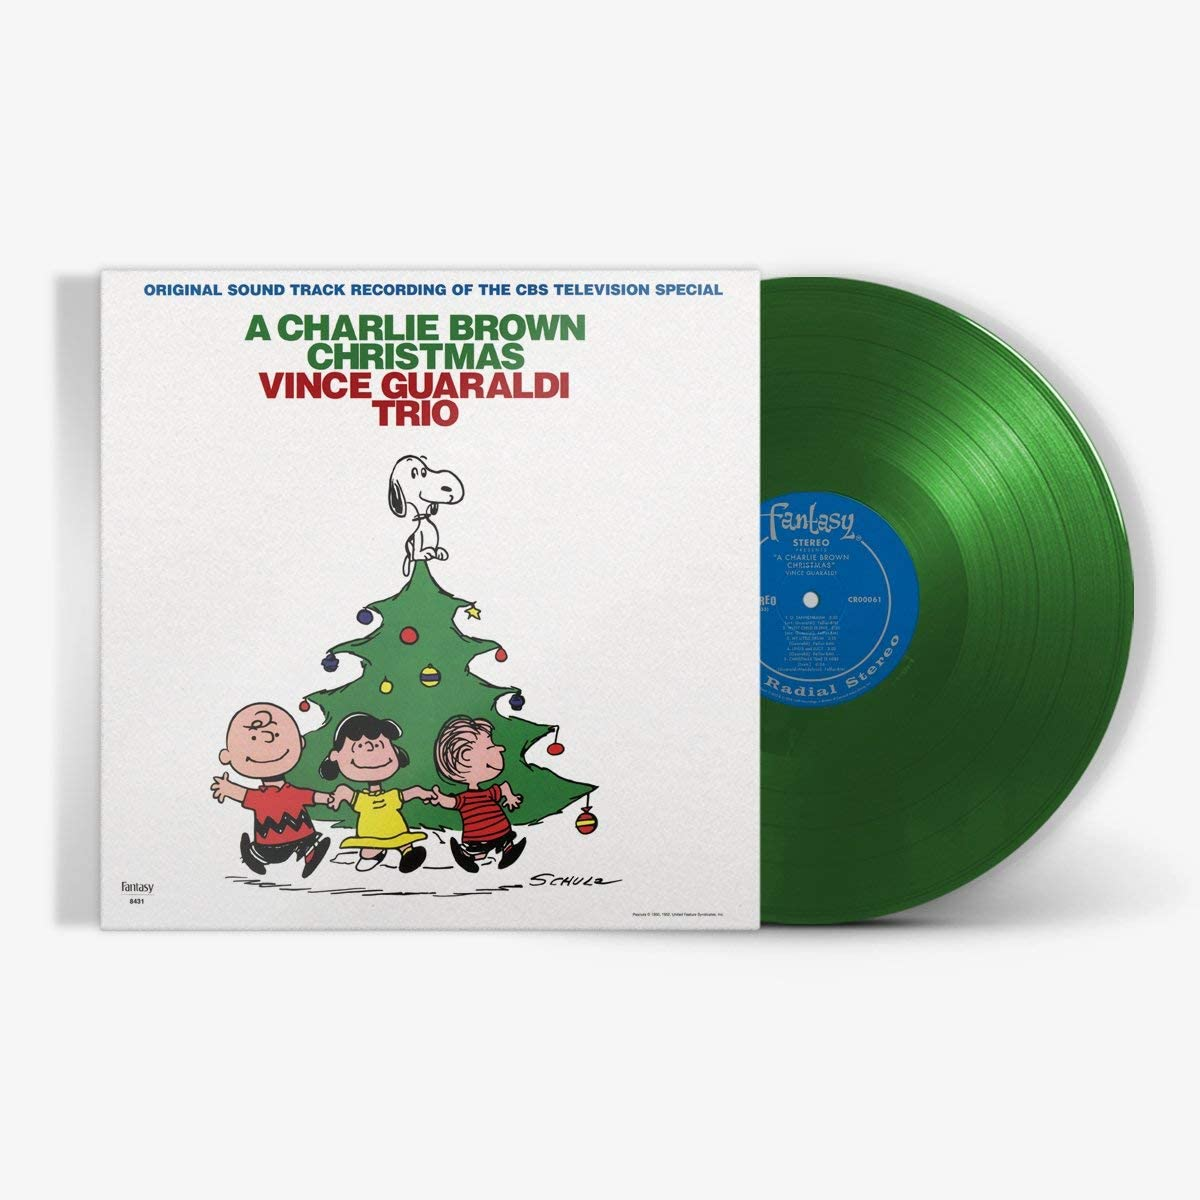 VINCE GUARALDI TRIO — A CHARLIE BROWN CHRISTMAS (VINILO VERDE)